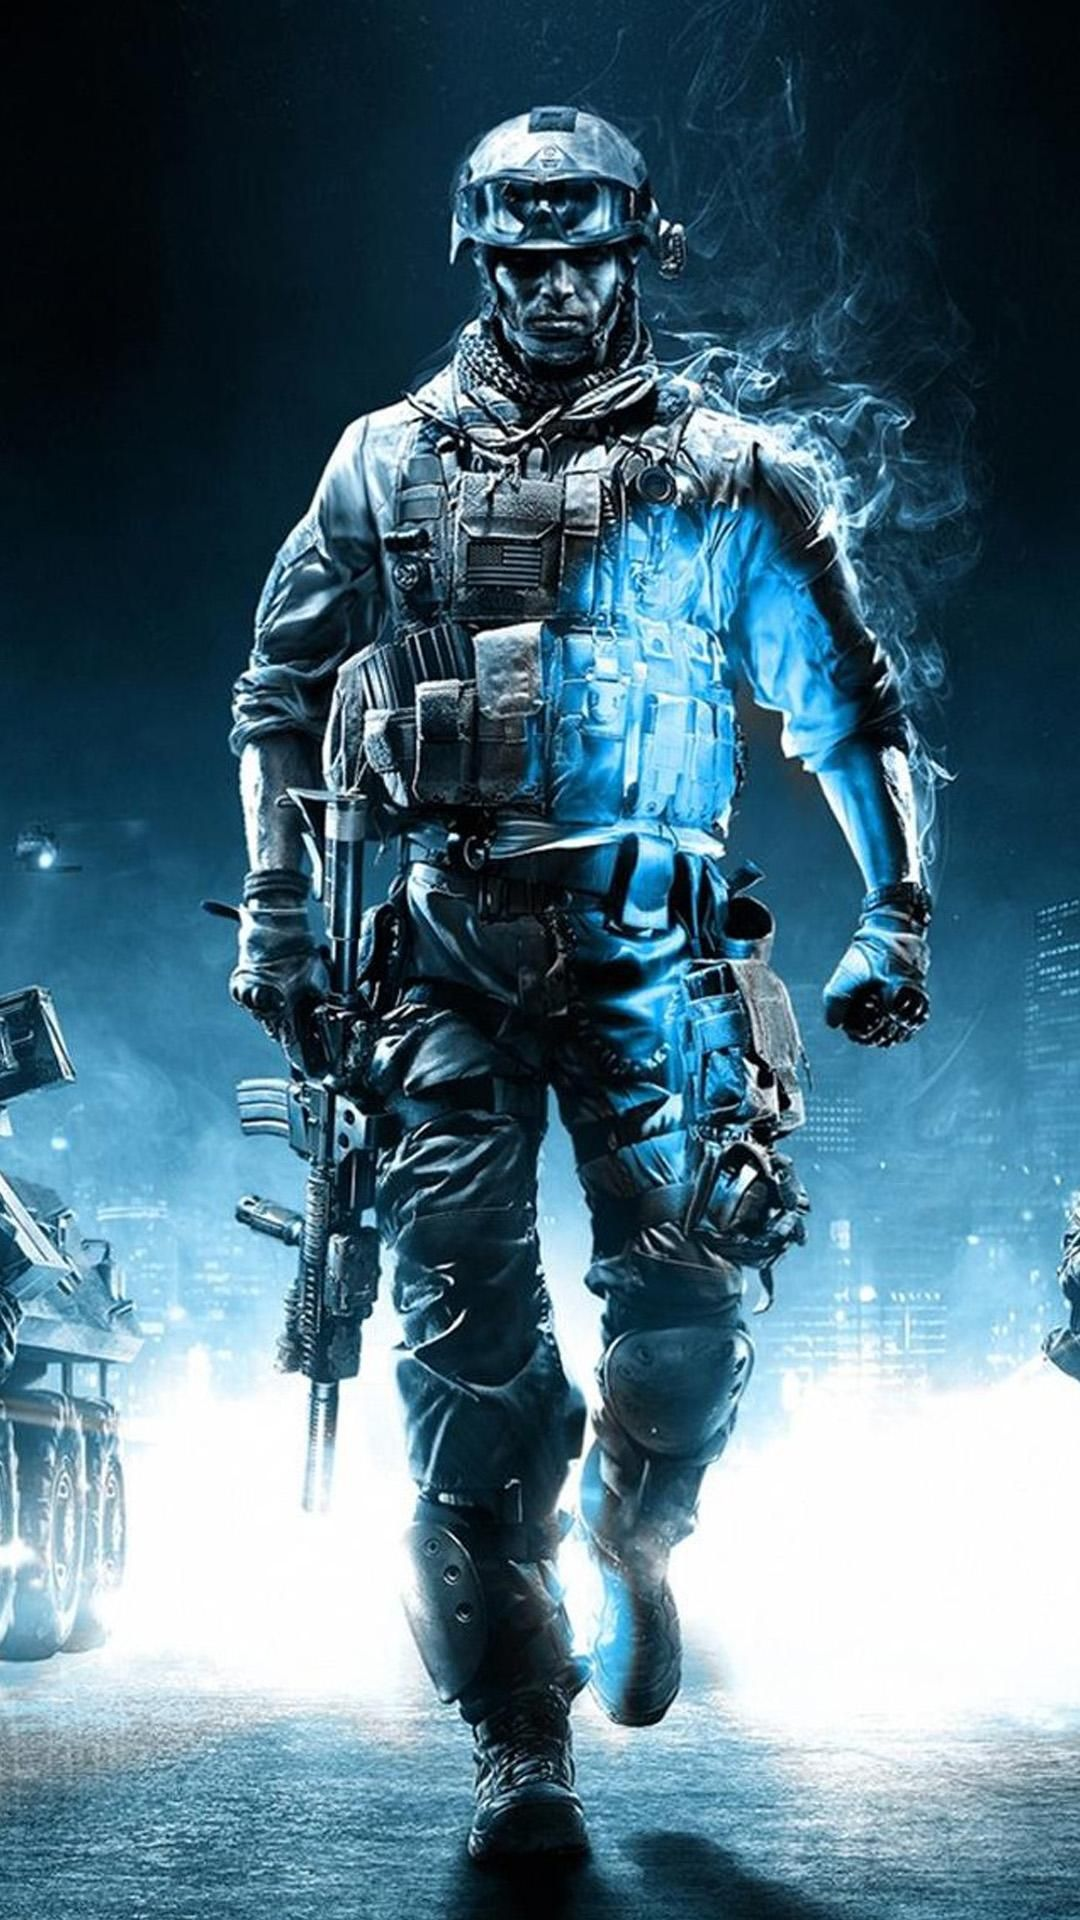 Stunning Call Of Duty Wallpaper Android Images For Free Download Newt Cat Gaming Wallpapers Call Of Duty Ghosts Mobile Wallpaper